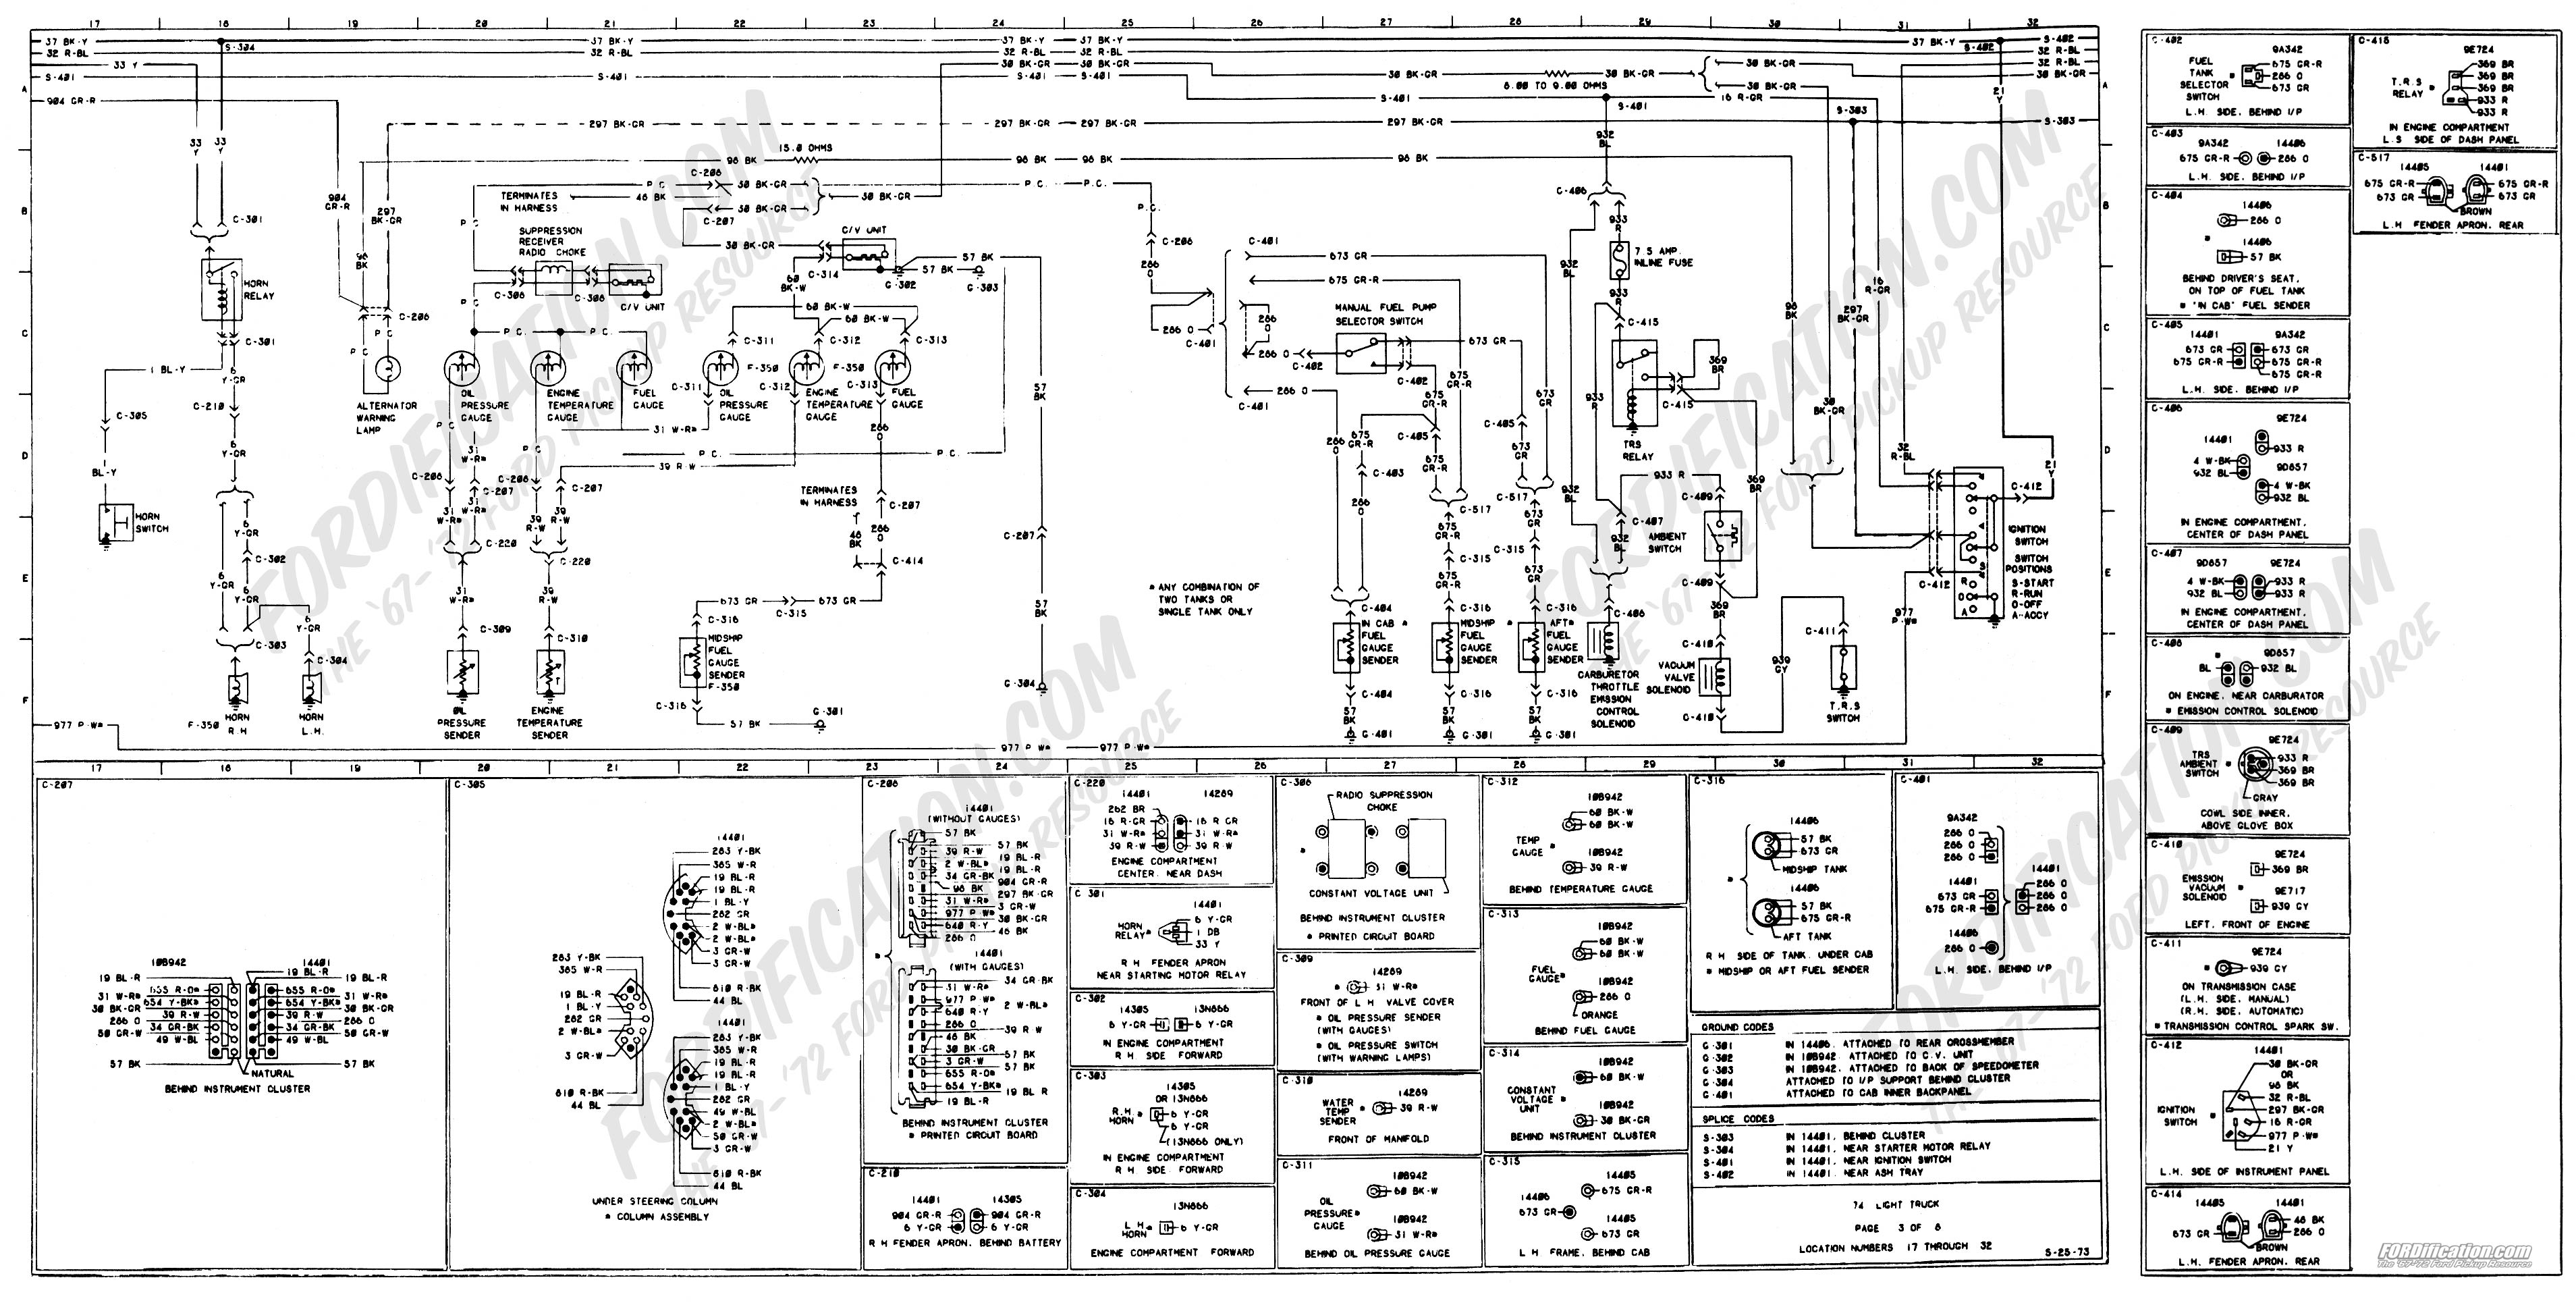 78 Ford Bronco Wiring Diagram 1979 F 250 Simple 1973 Truck Diagrams Schematics Fordification Net 1990 150